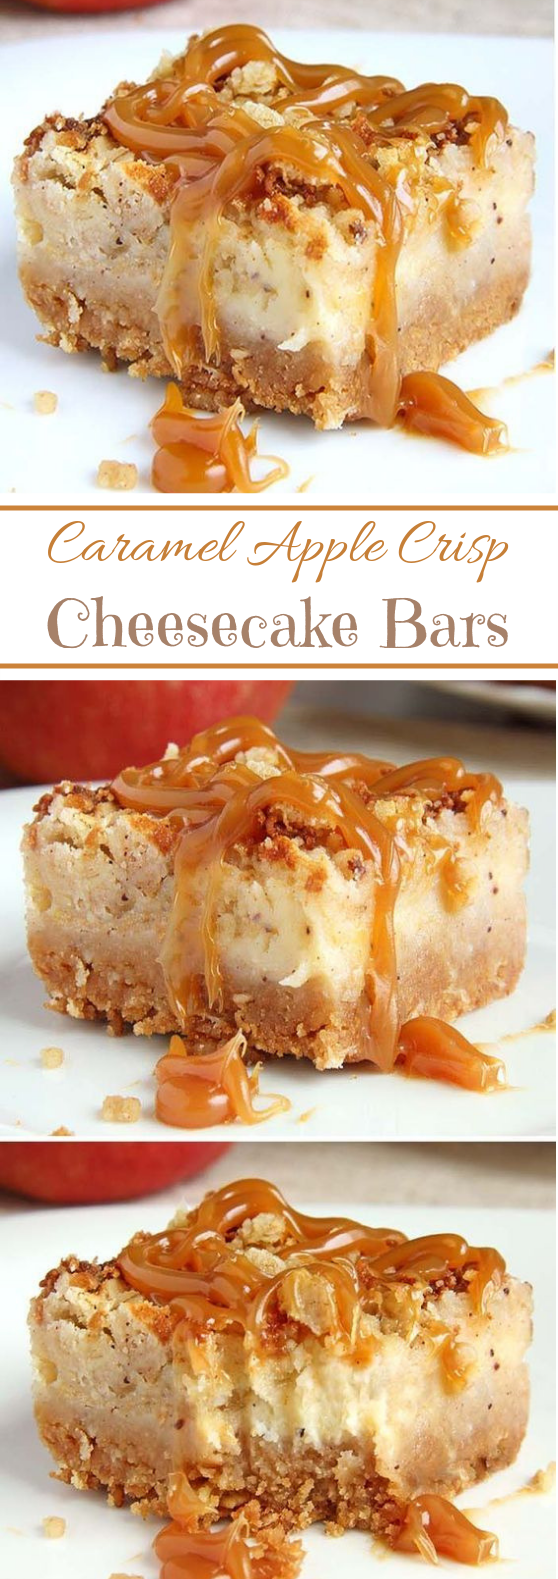 Caramel Apple Crisp Cheesecake Bars #bars #dessert